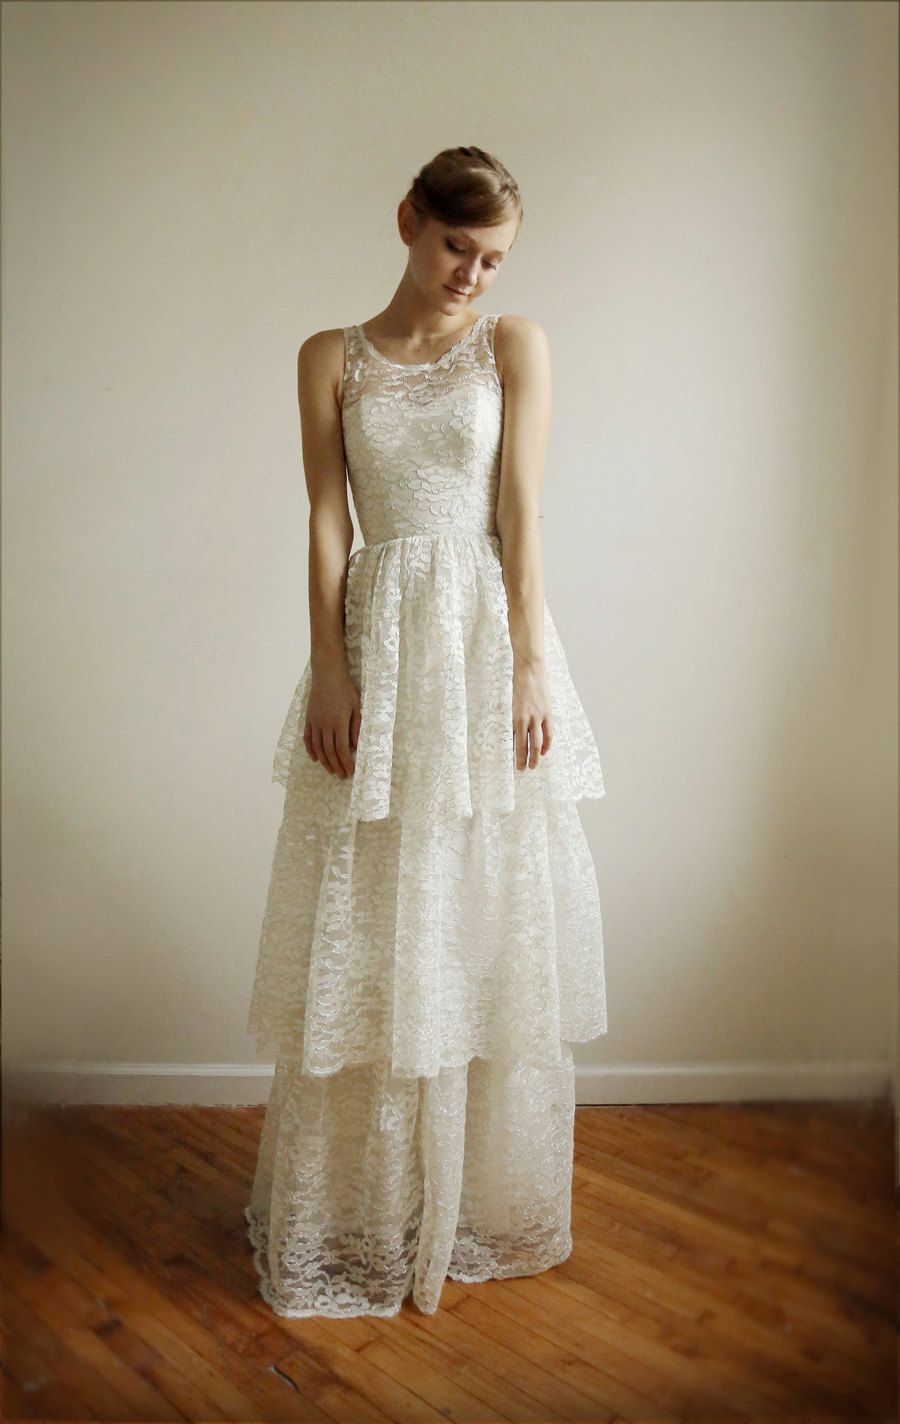 Lace dress gown  Tiered dress  WEDDING DUDS  Pinterest  Tiered dress Ivory and Gowns